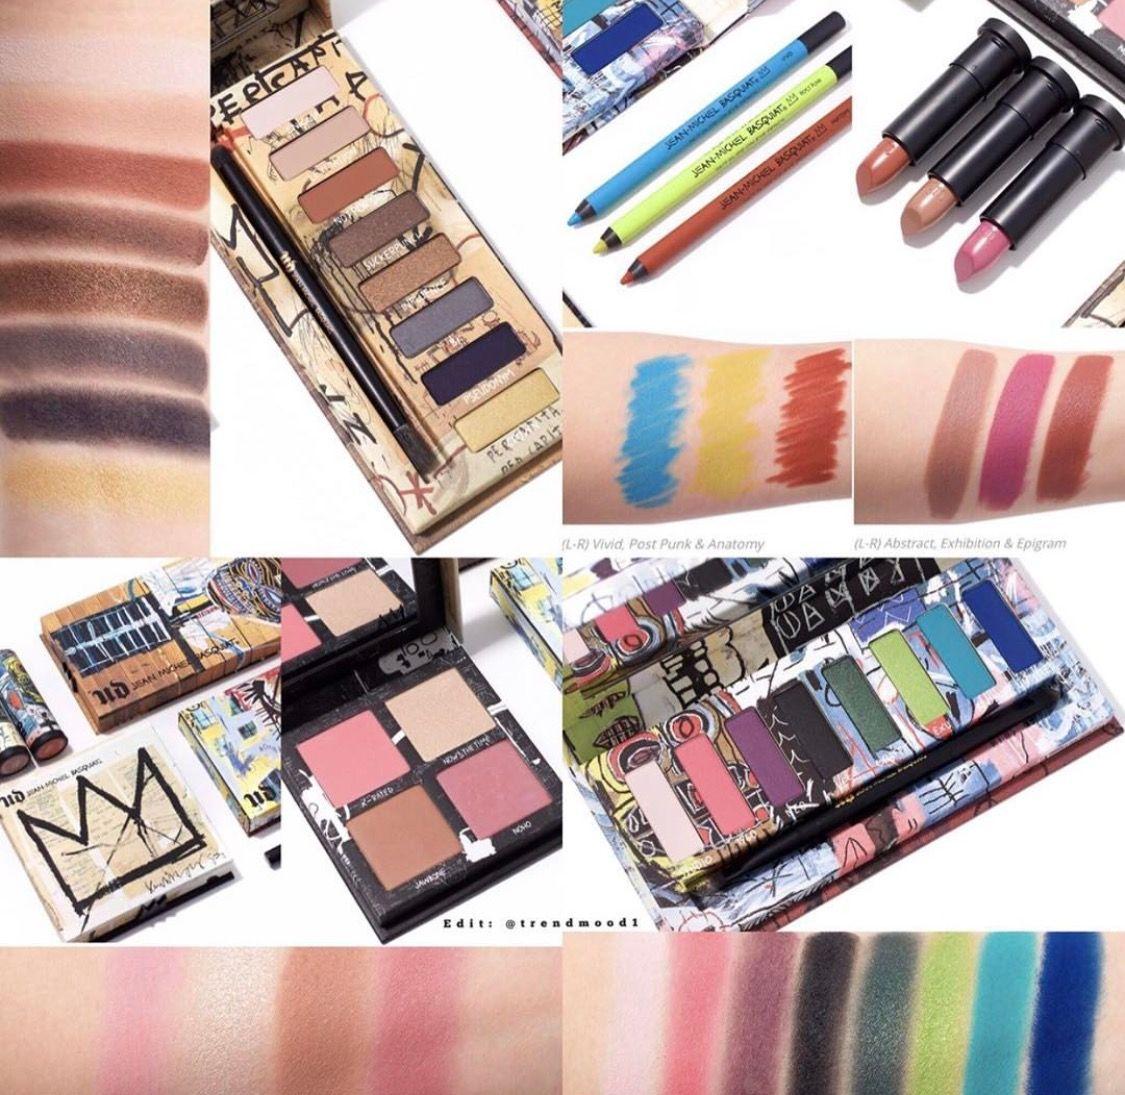 Urban Decay x Basquiat | swatches in 2018 | Pinterest | Makeup ...